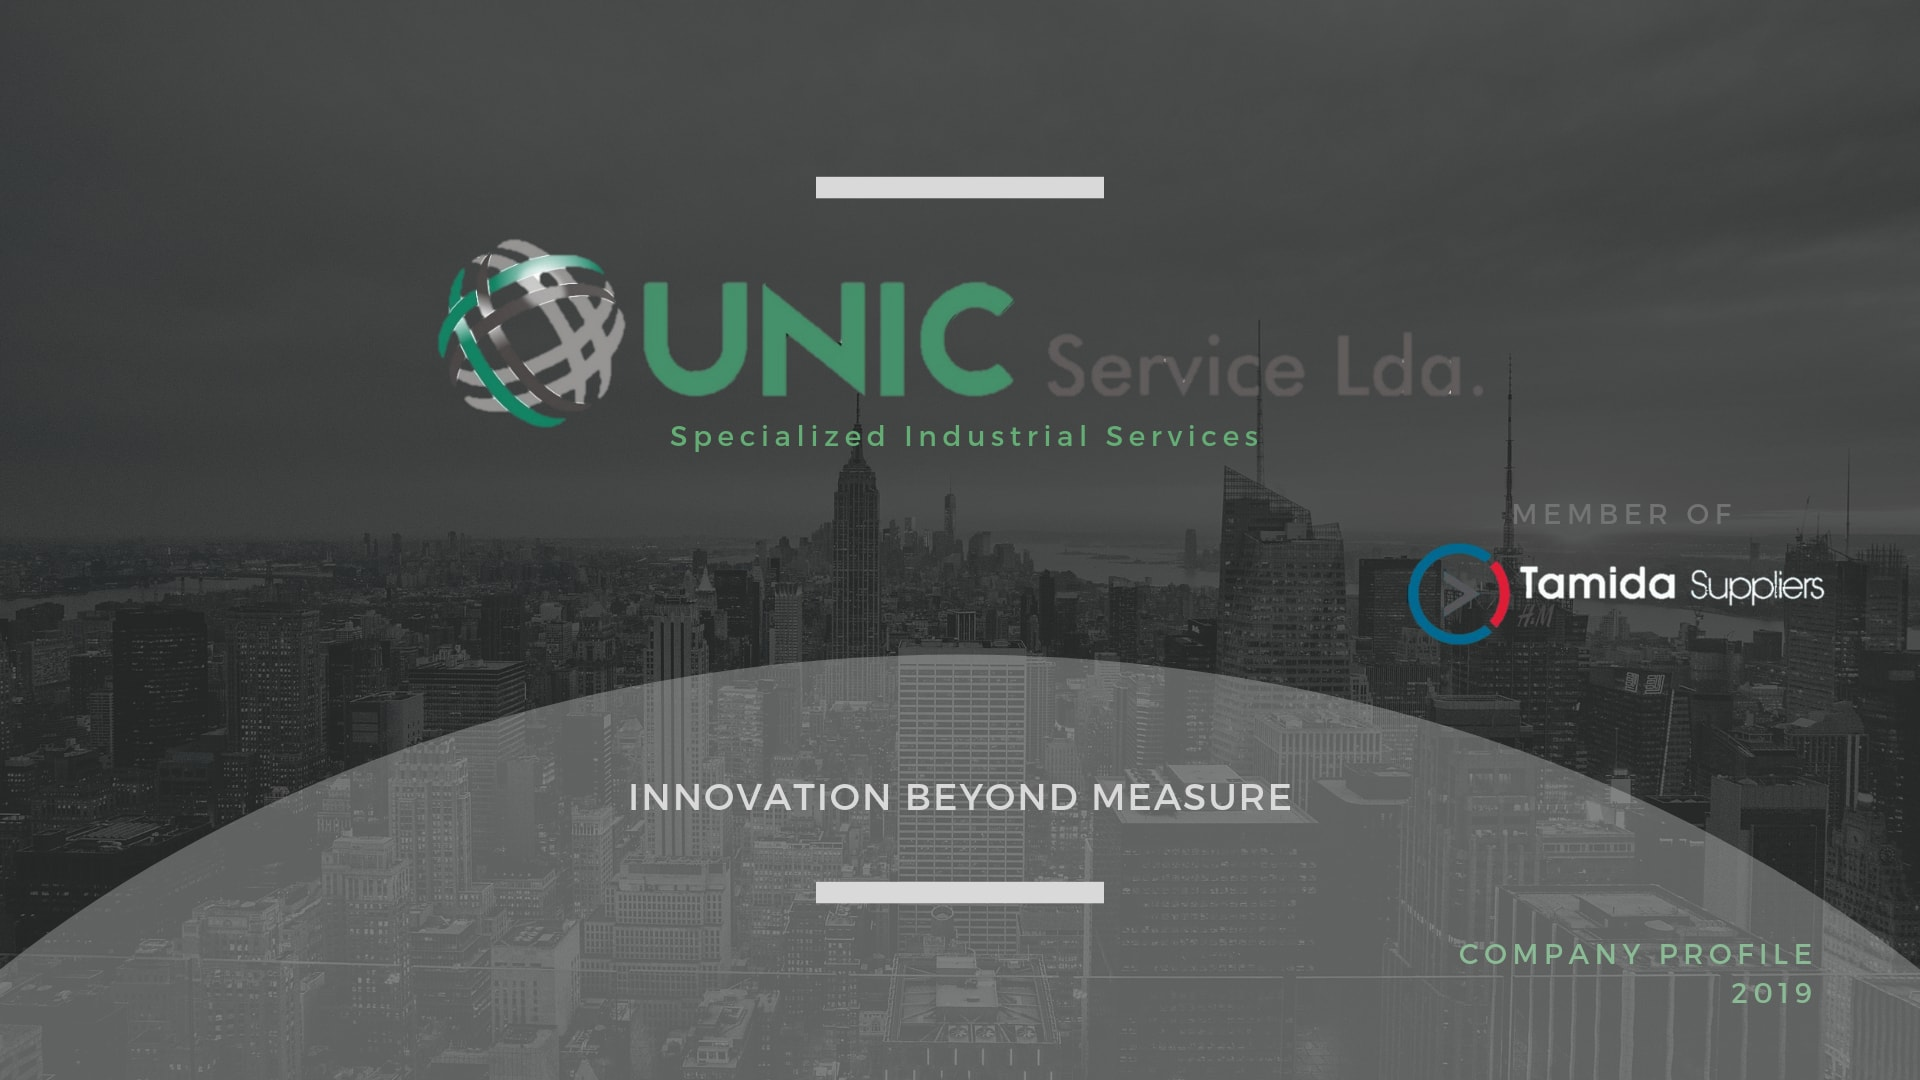 Unic service company profile Kiyanda tec | Marketing digital Maputo